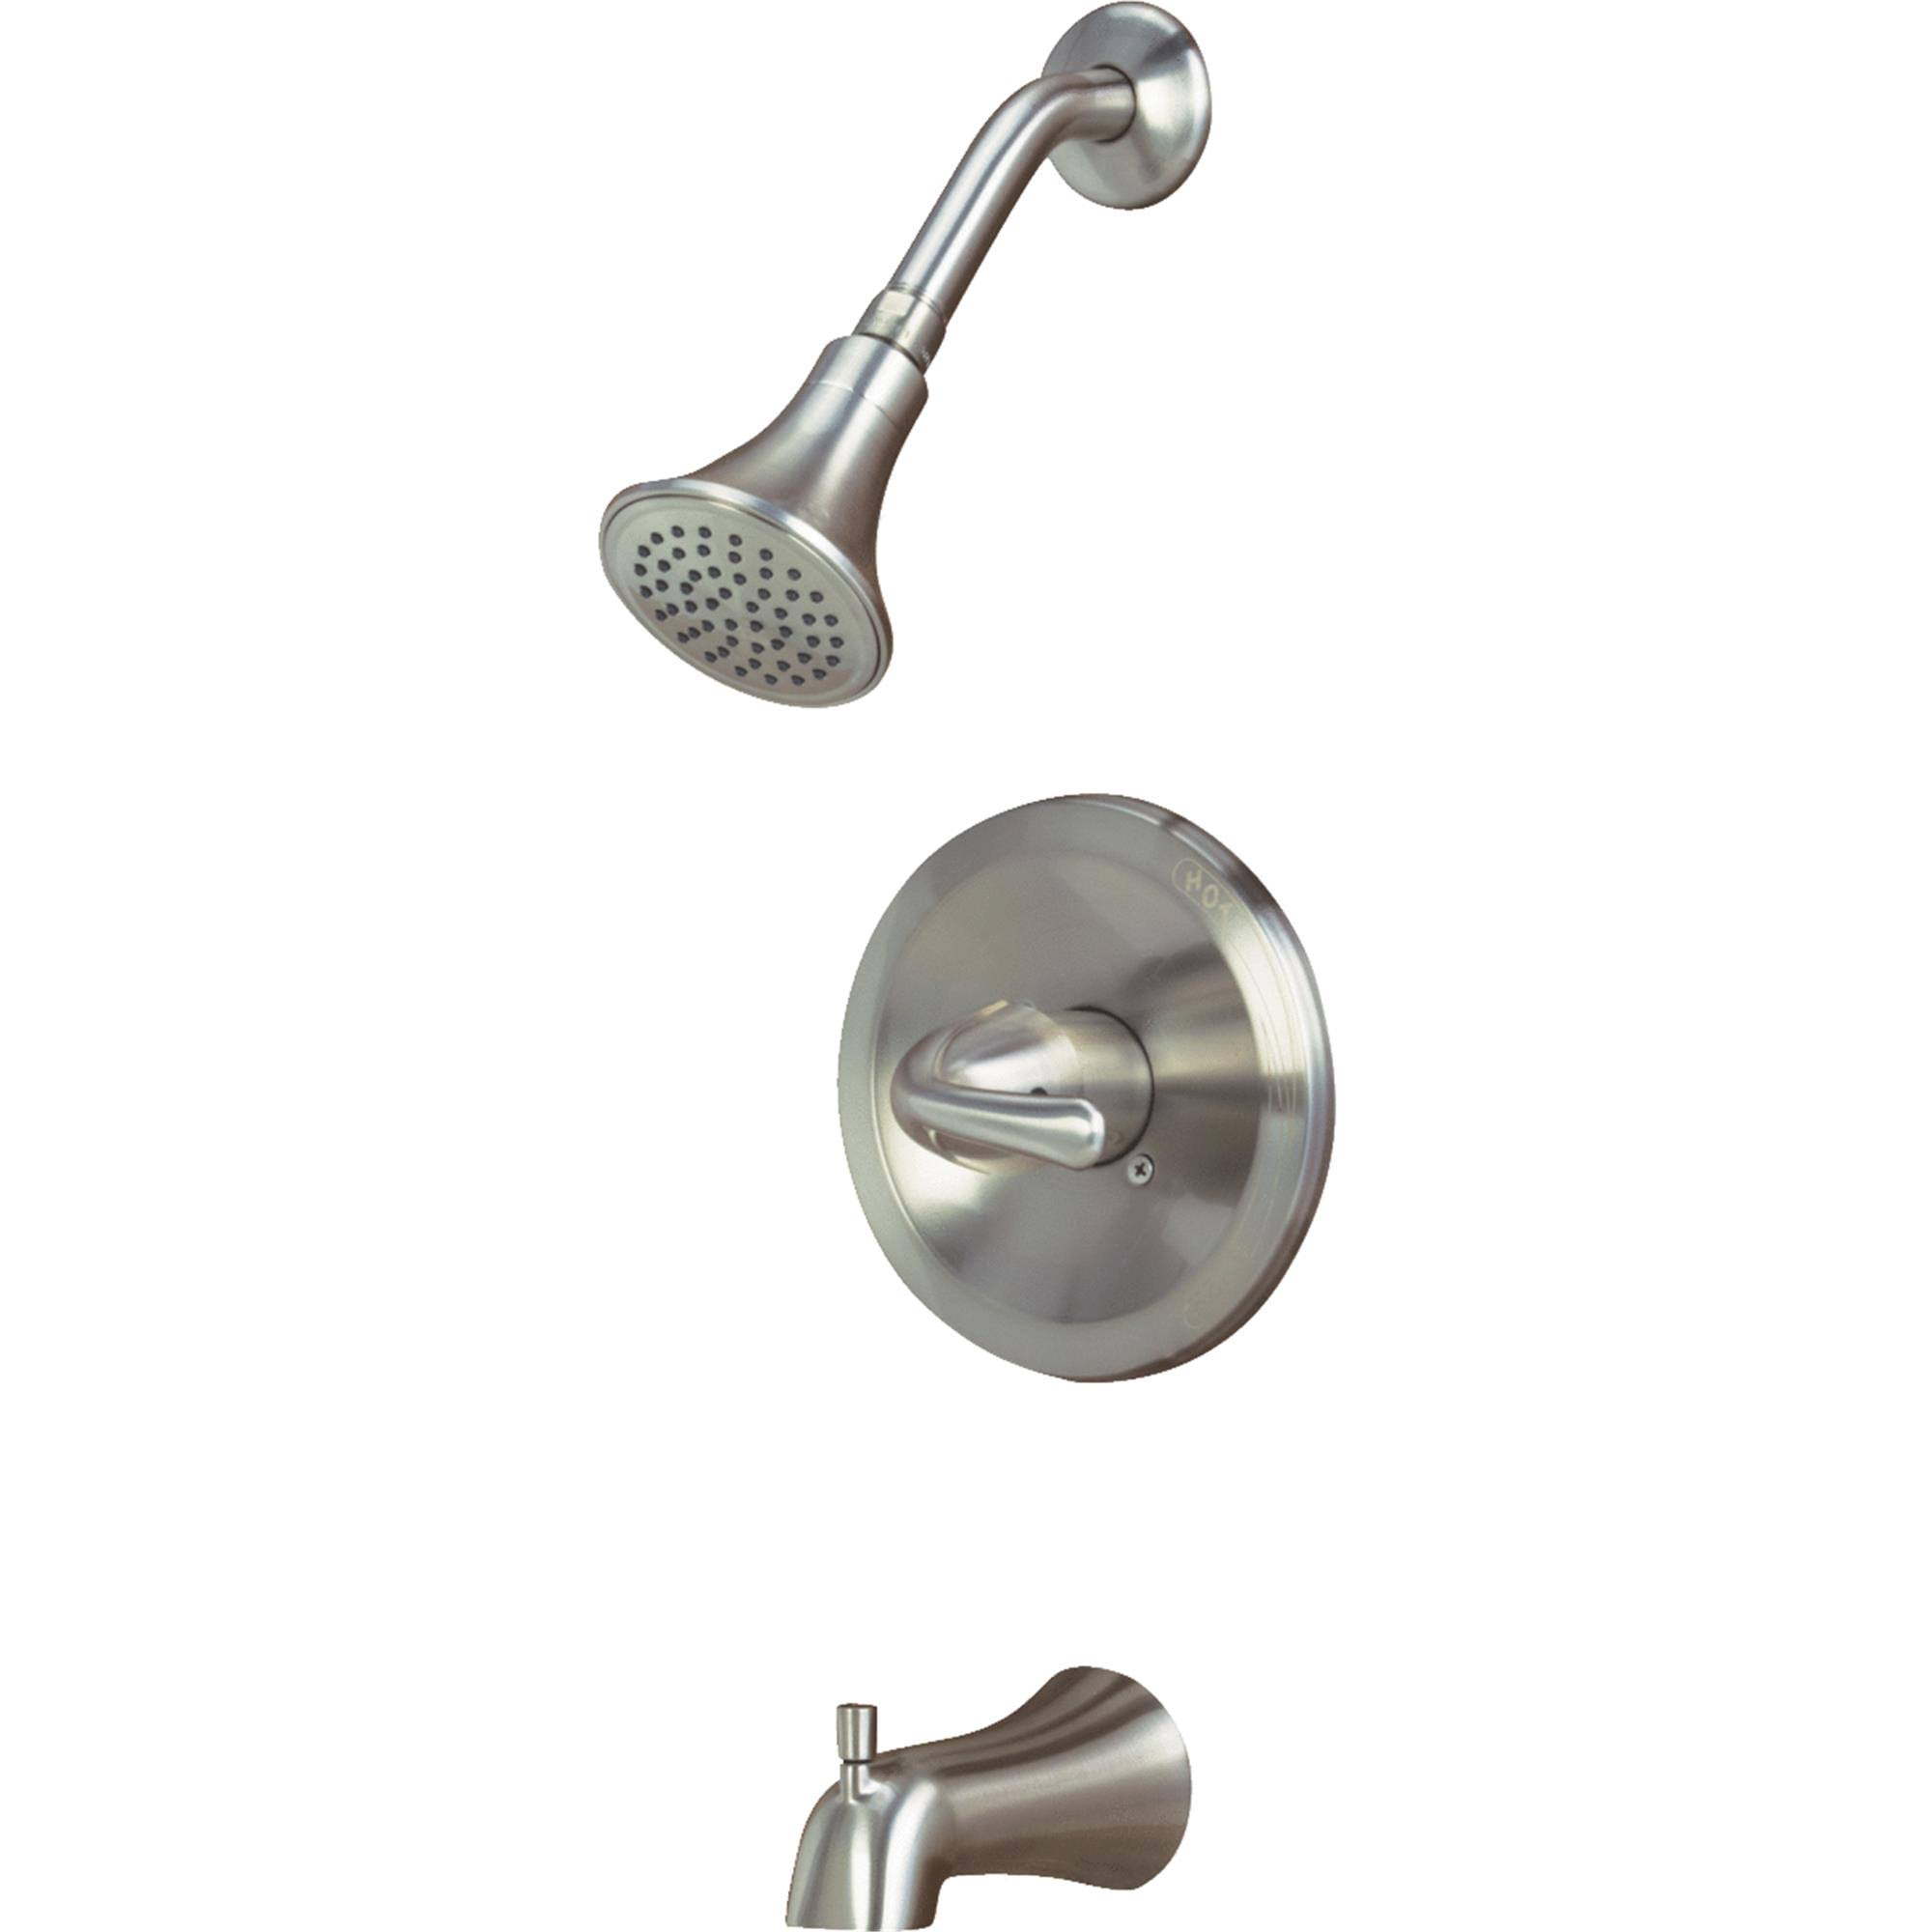 Globe Union F1A14507NP-JPA3 BN Tub/Shower Faucet